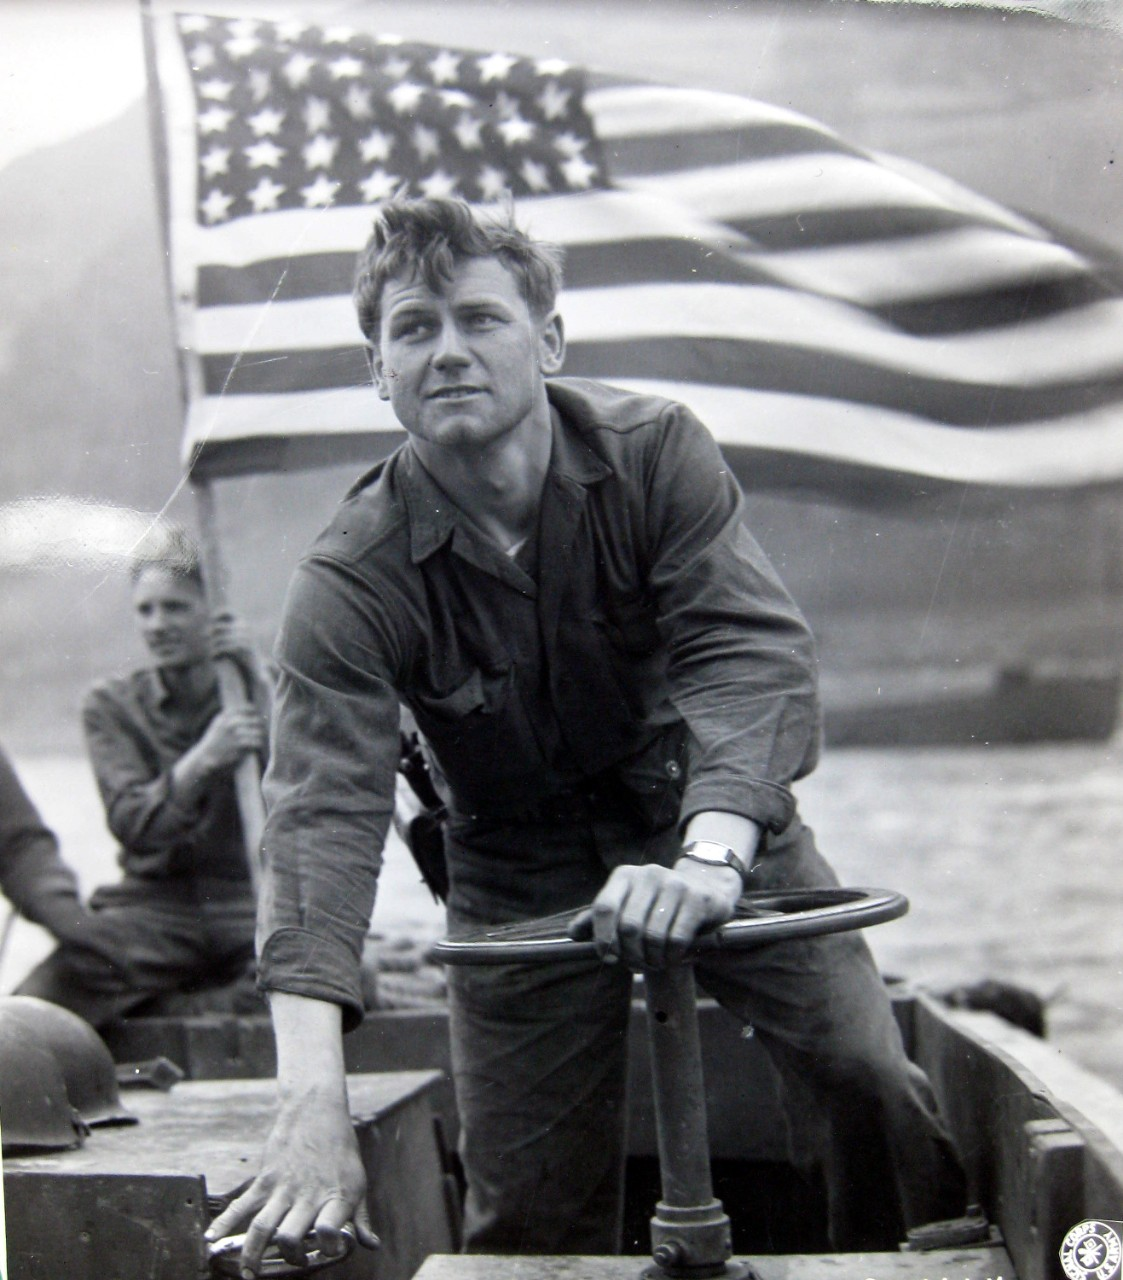 <p>With the American flag flying over his head, Motor Machinist's Mate Robert Mooty, USN, ferries troops across the Rhine River at Oberwesel, Germany.</p>